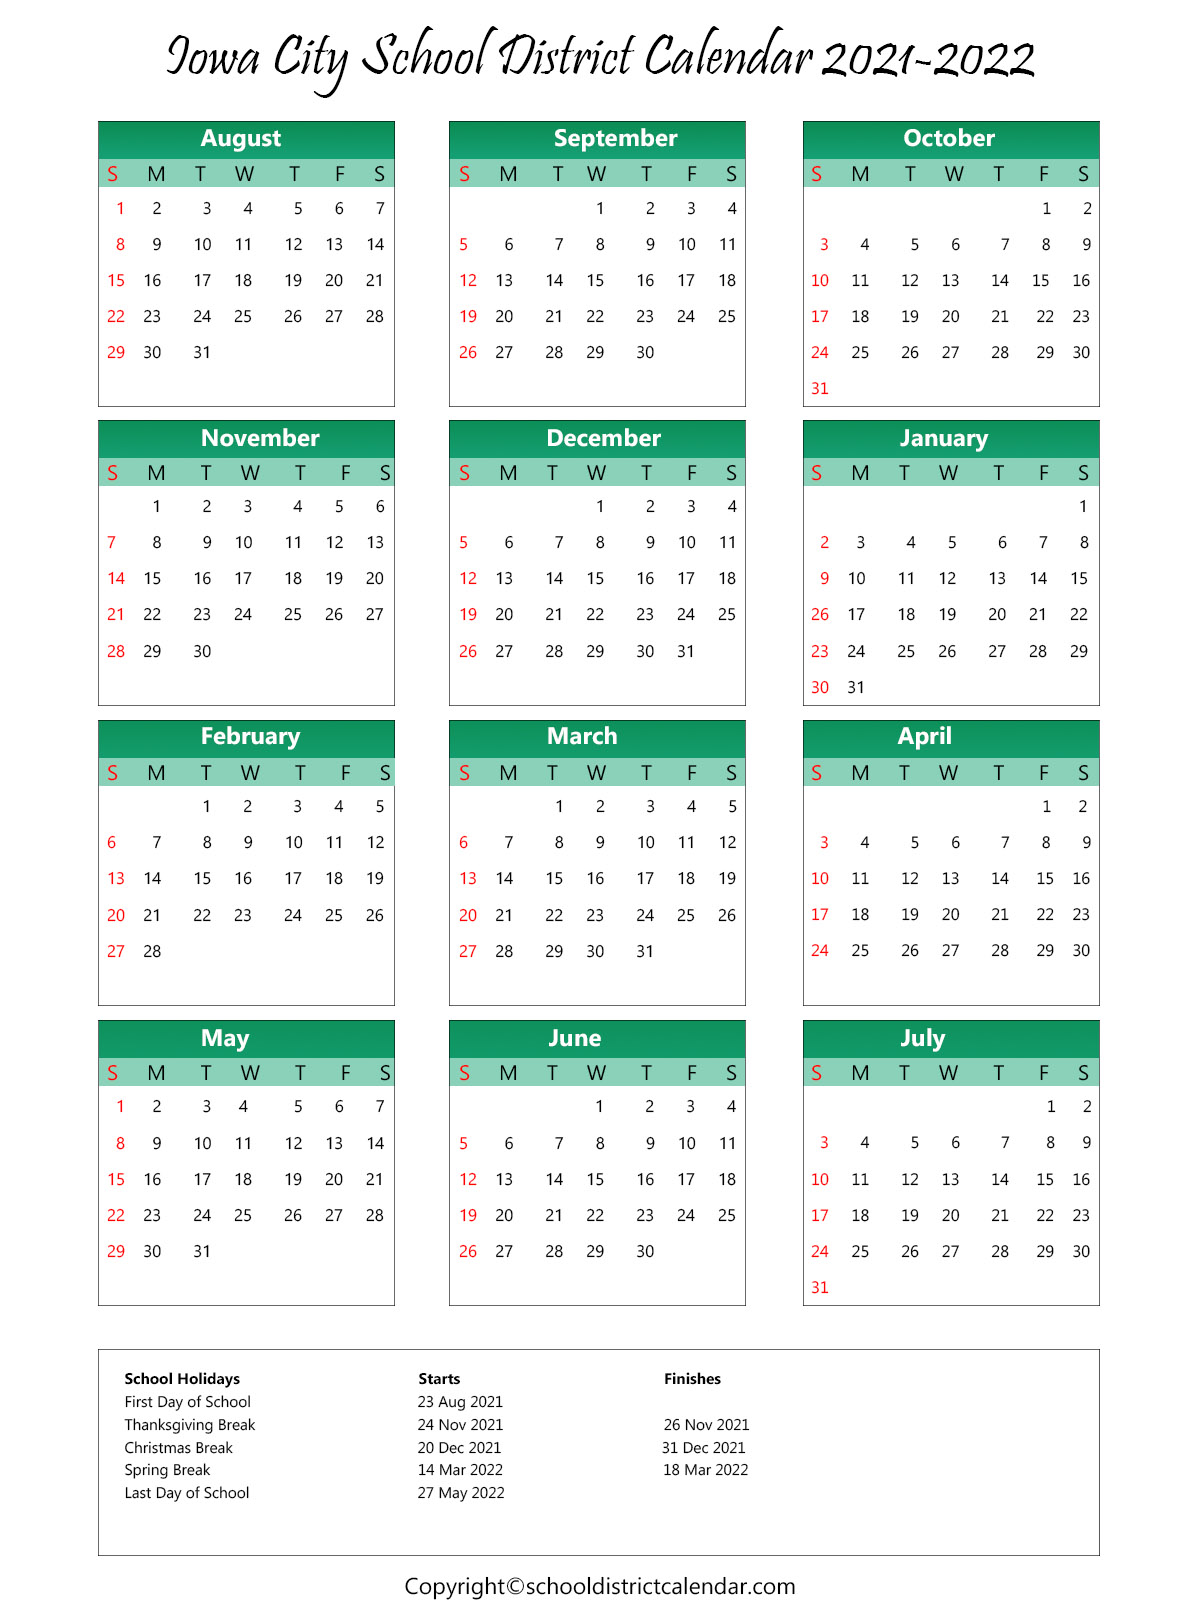 Iowa City School District, Johnson County Calendar Holidays 2021